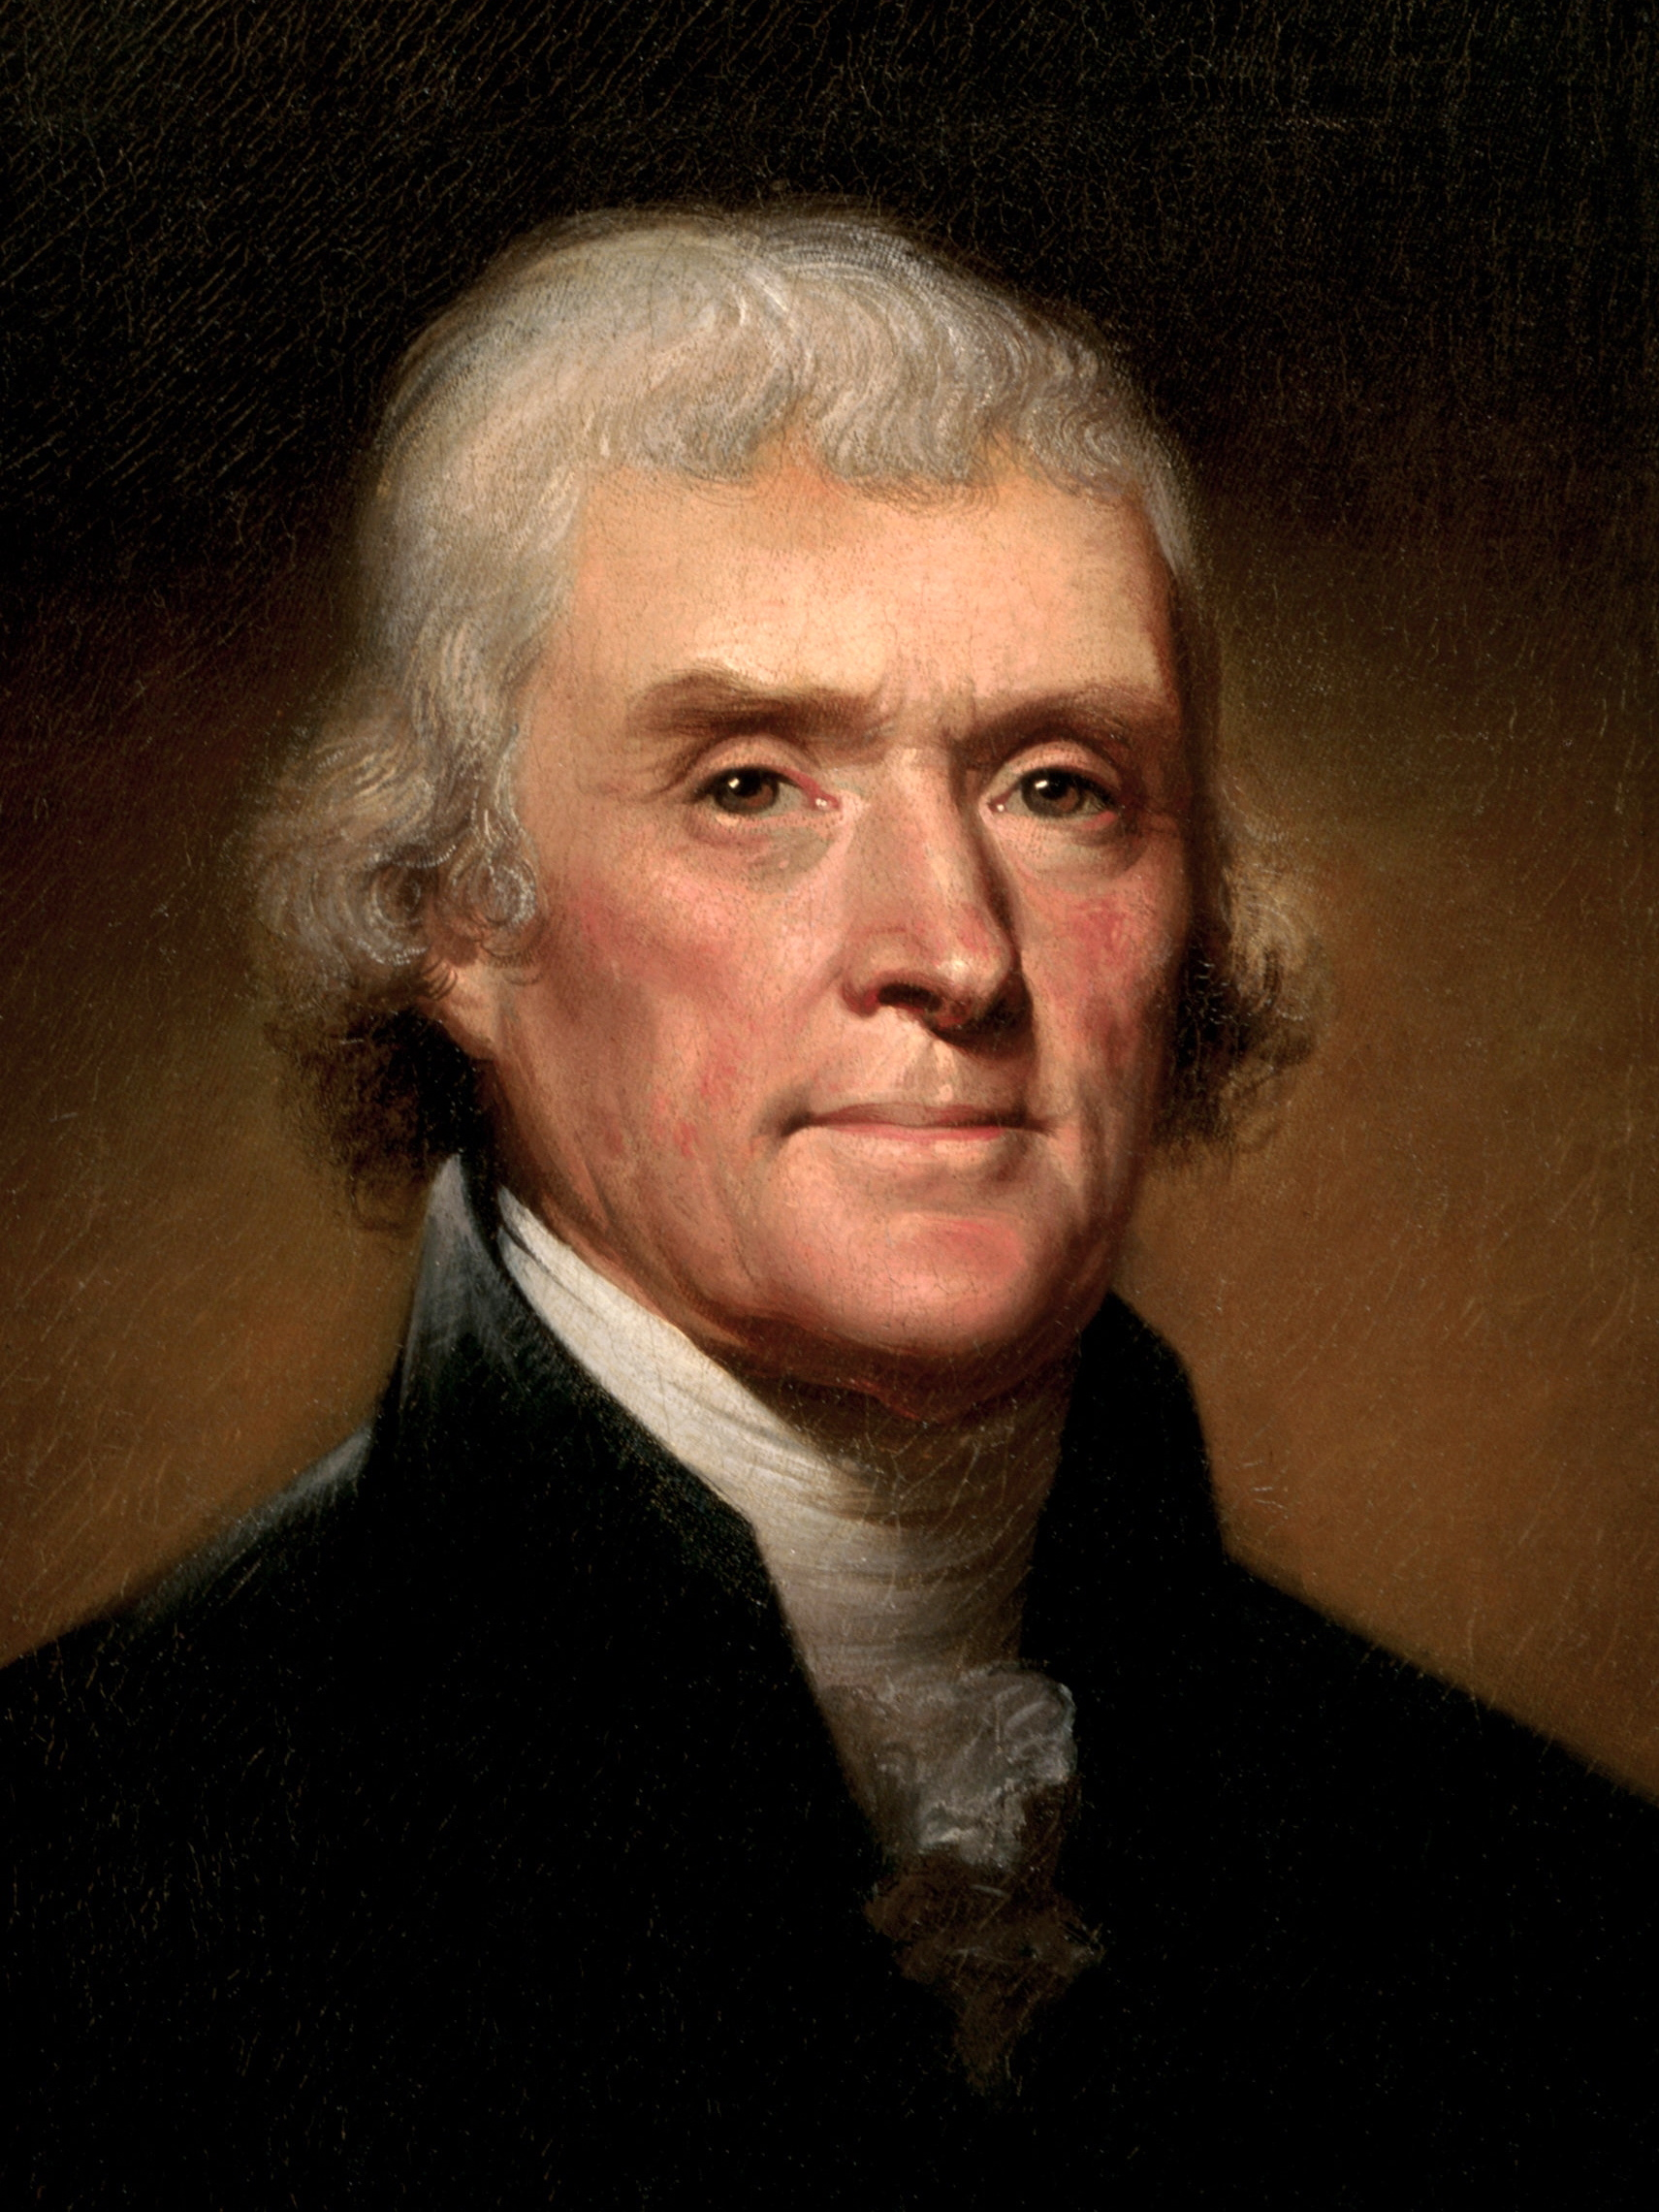 Thomas jefferson date of birth in Australia